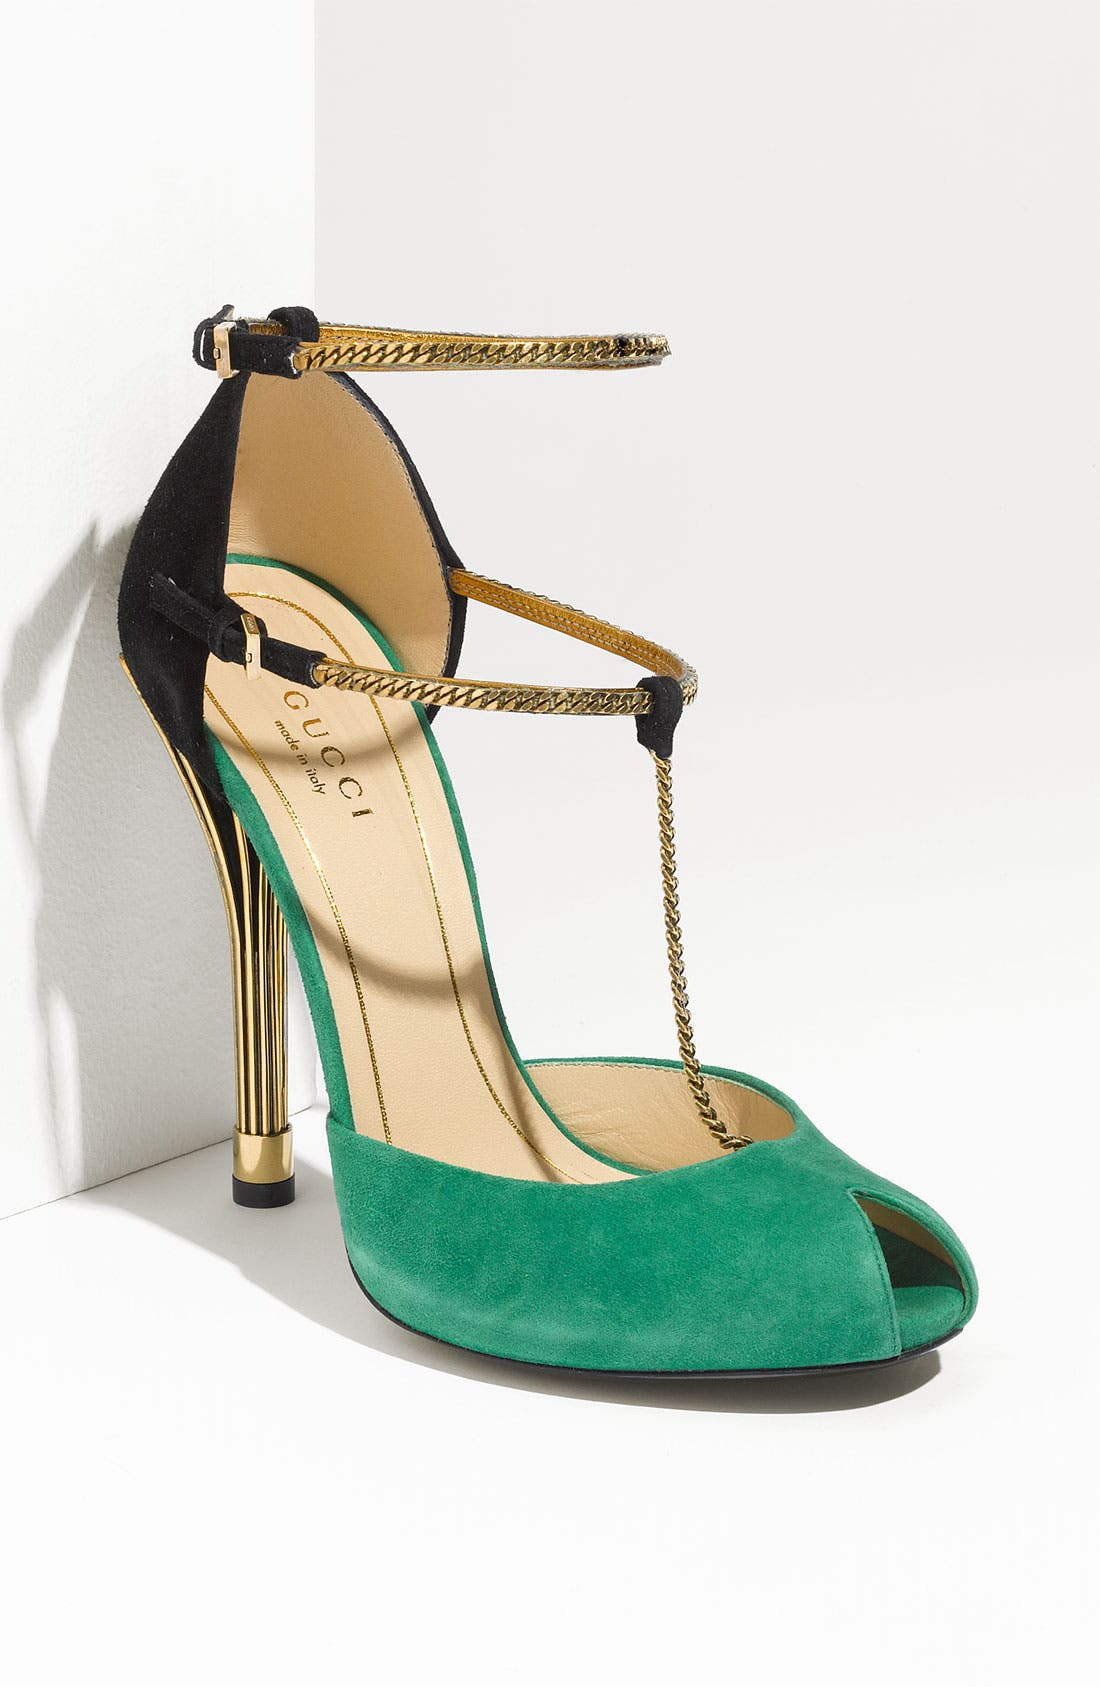 Alternate Image 1 Selected - Gucci Chain Strap Mary Jane Sandal